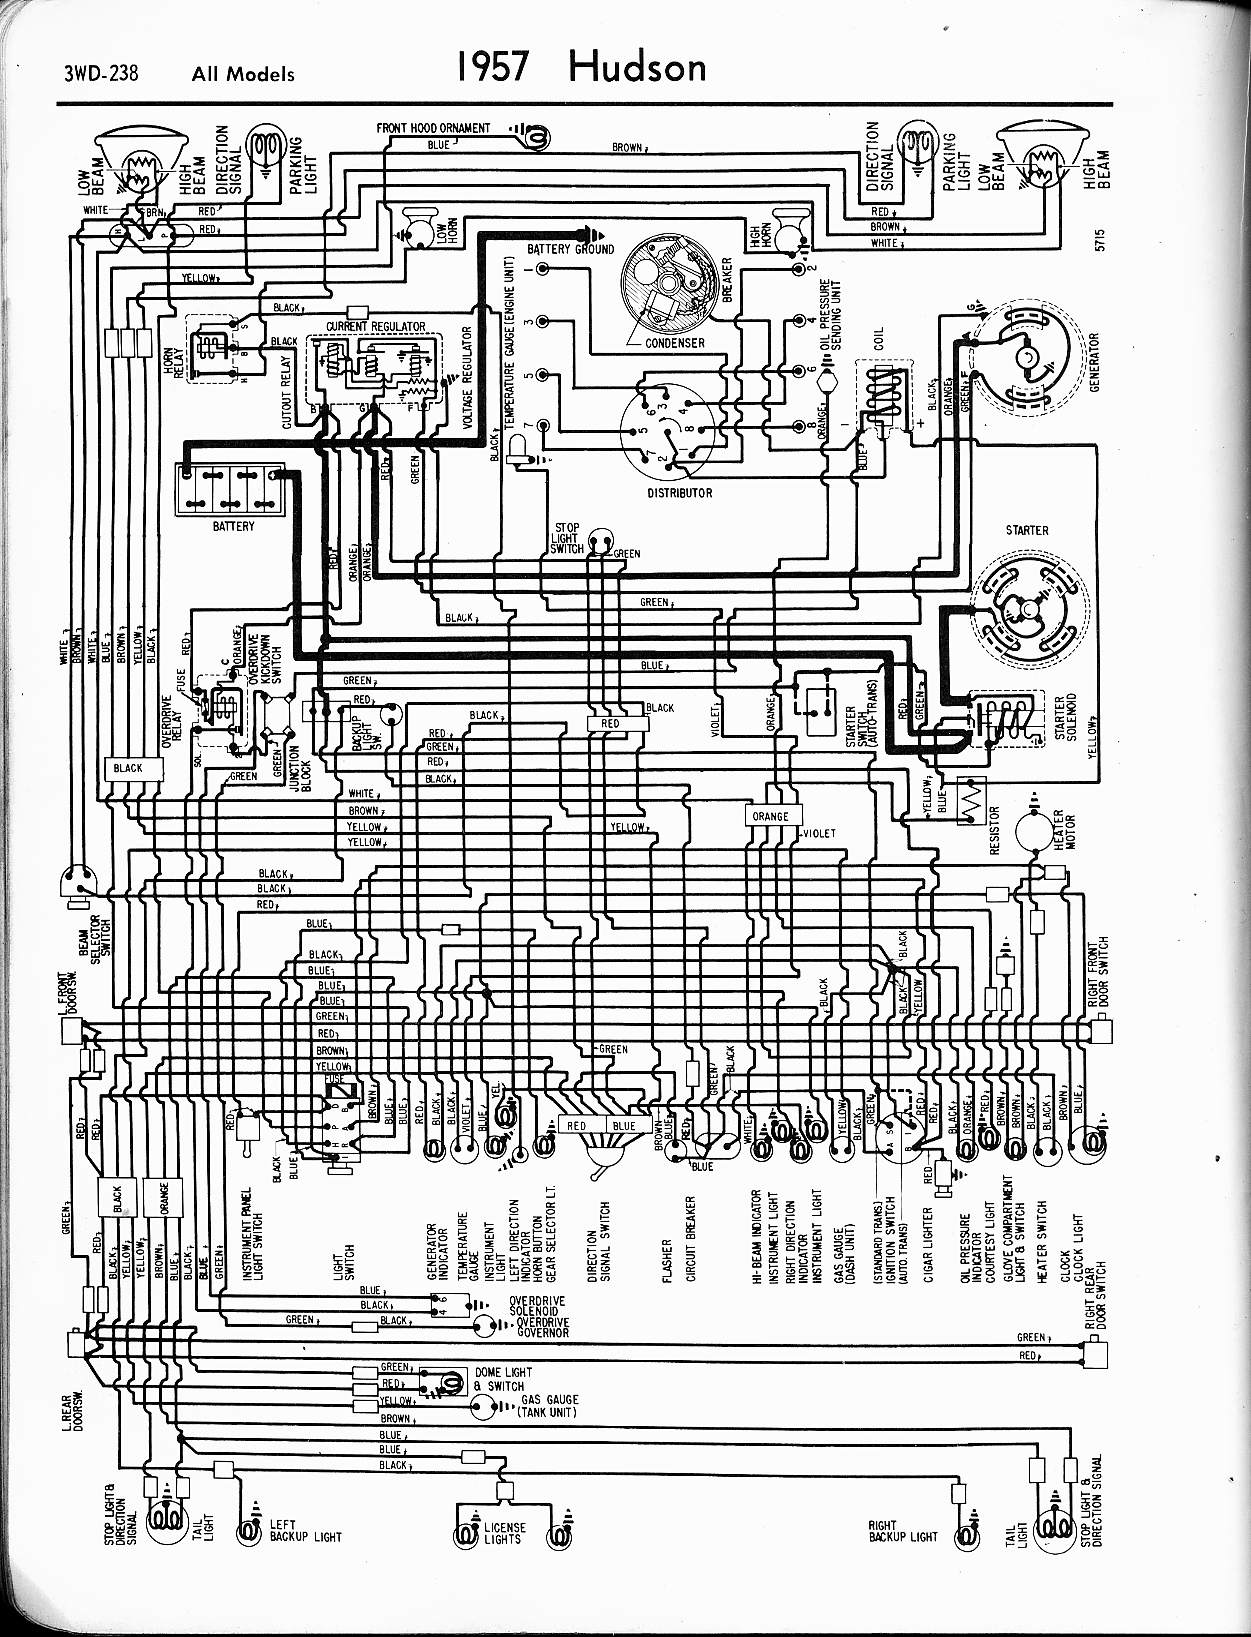 1957 Hudson wiring diagram